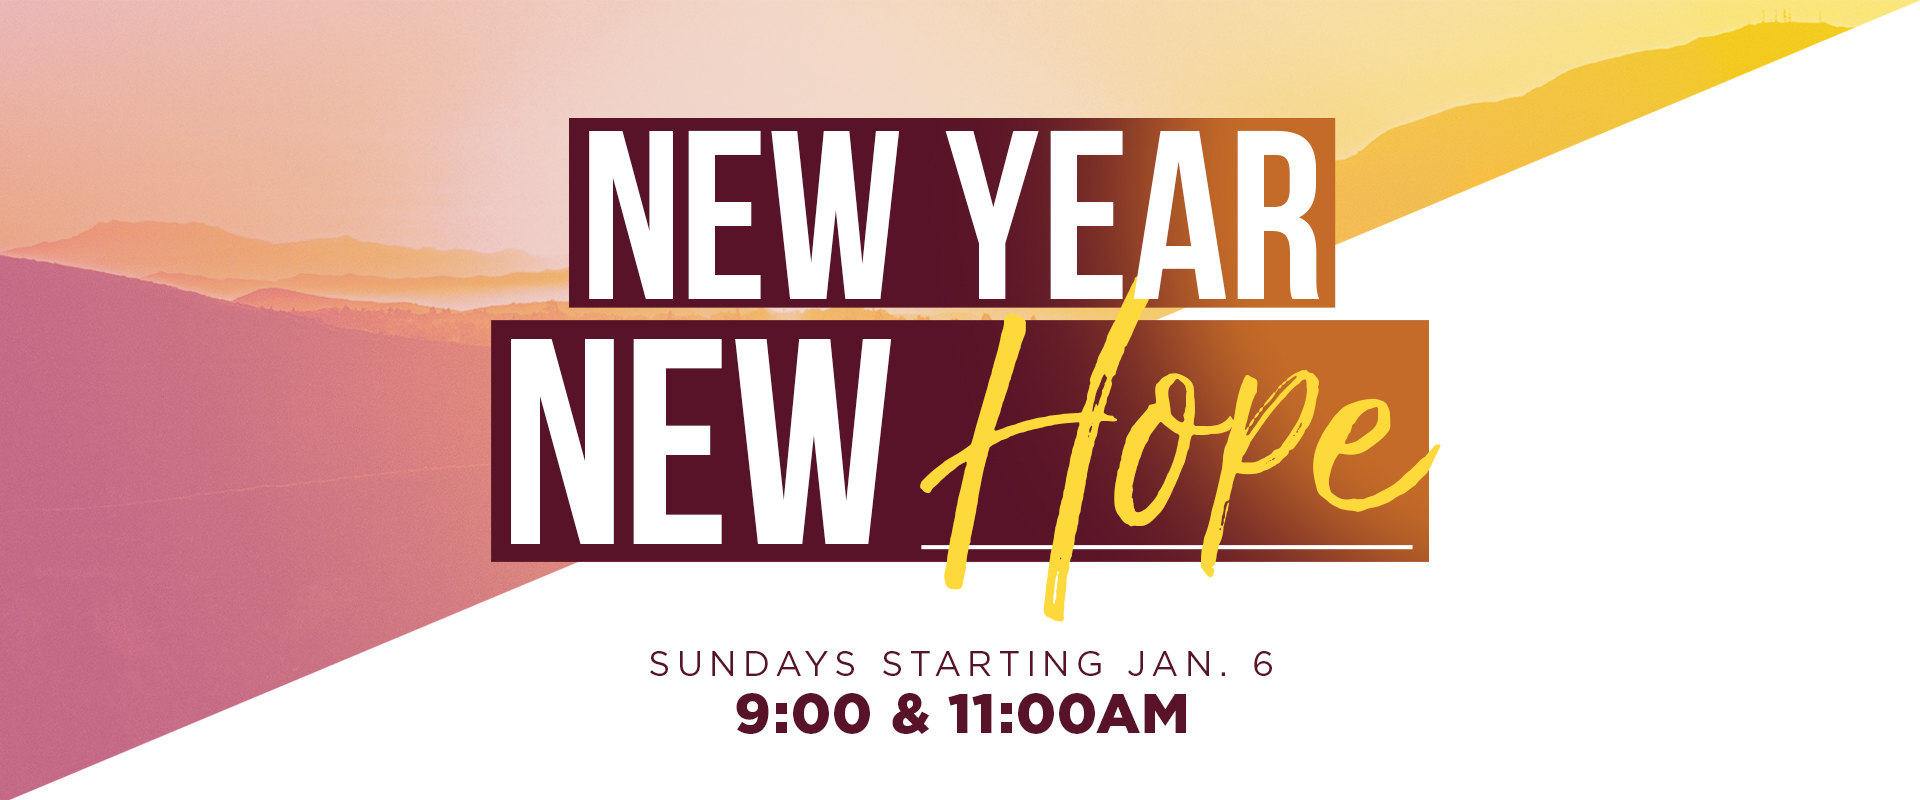 New Year New Hope message series slide